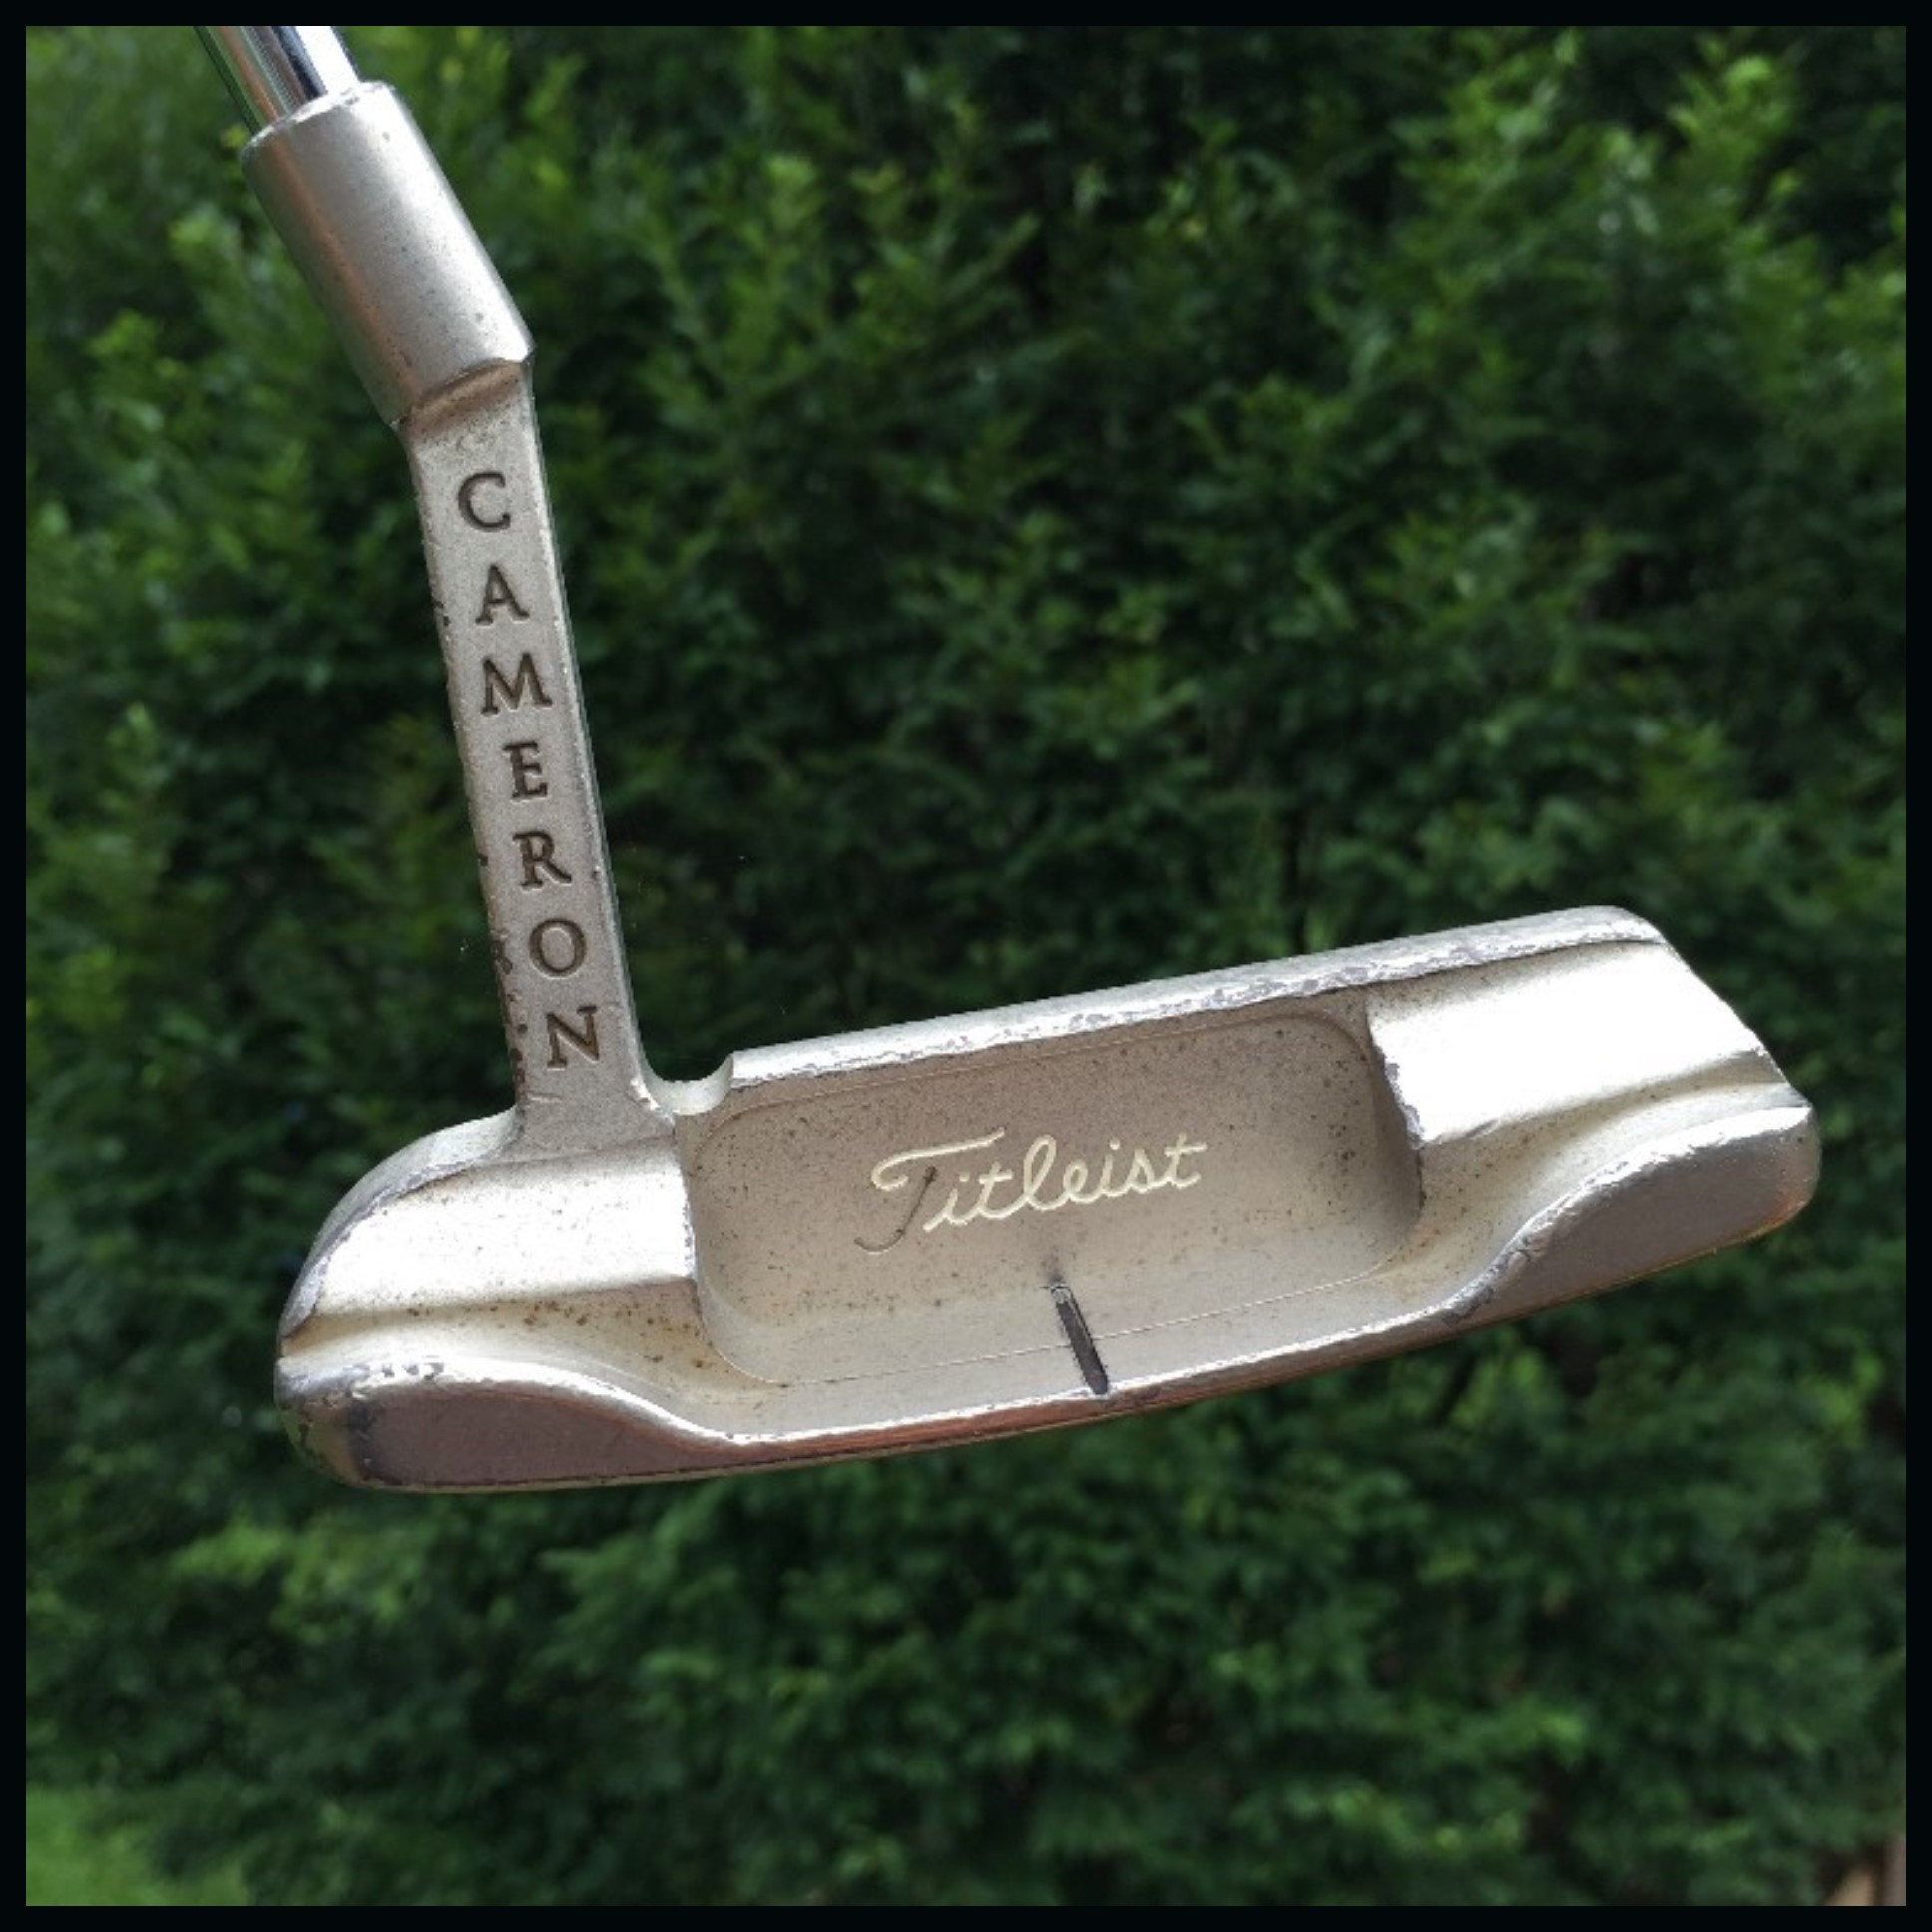 Scotty Cameron carbon steel putter